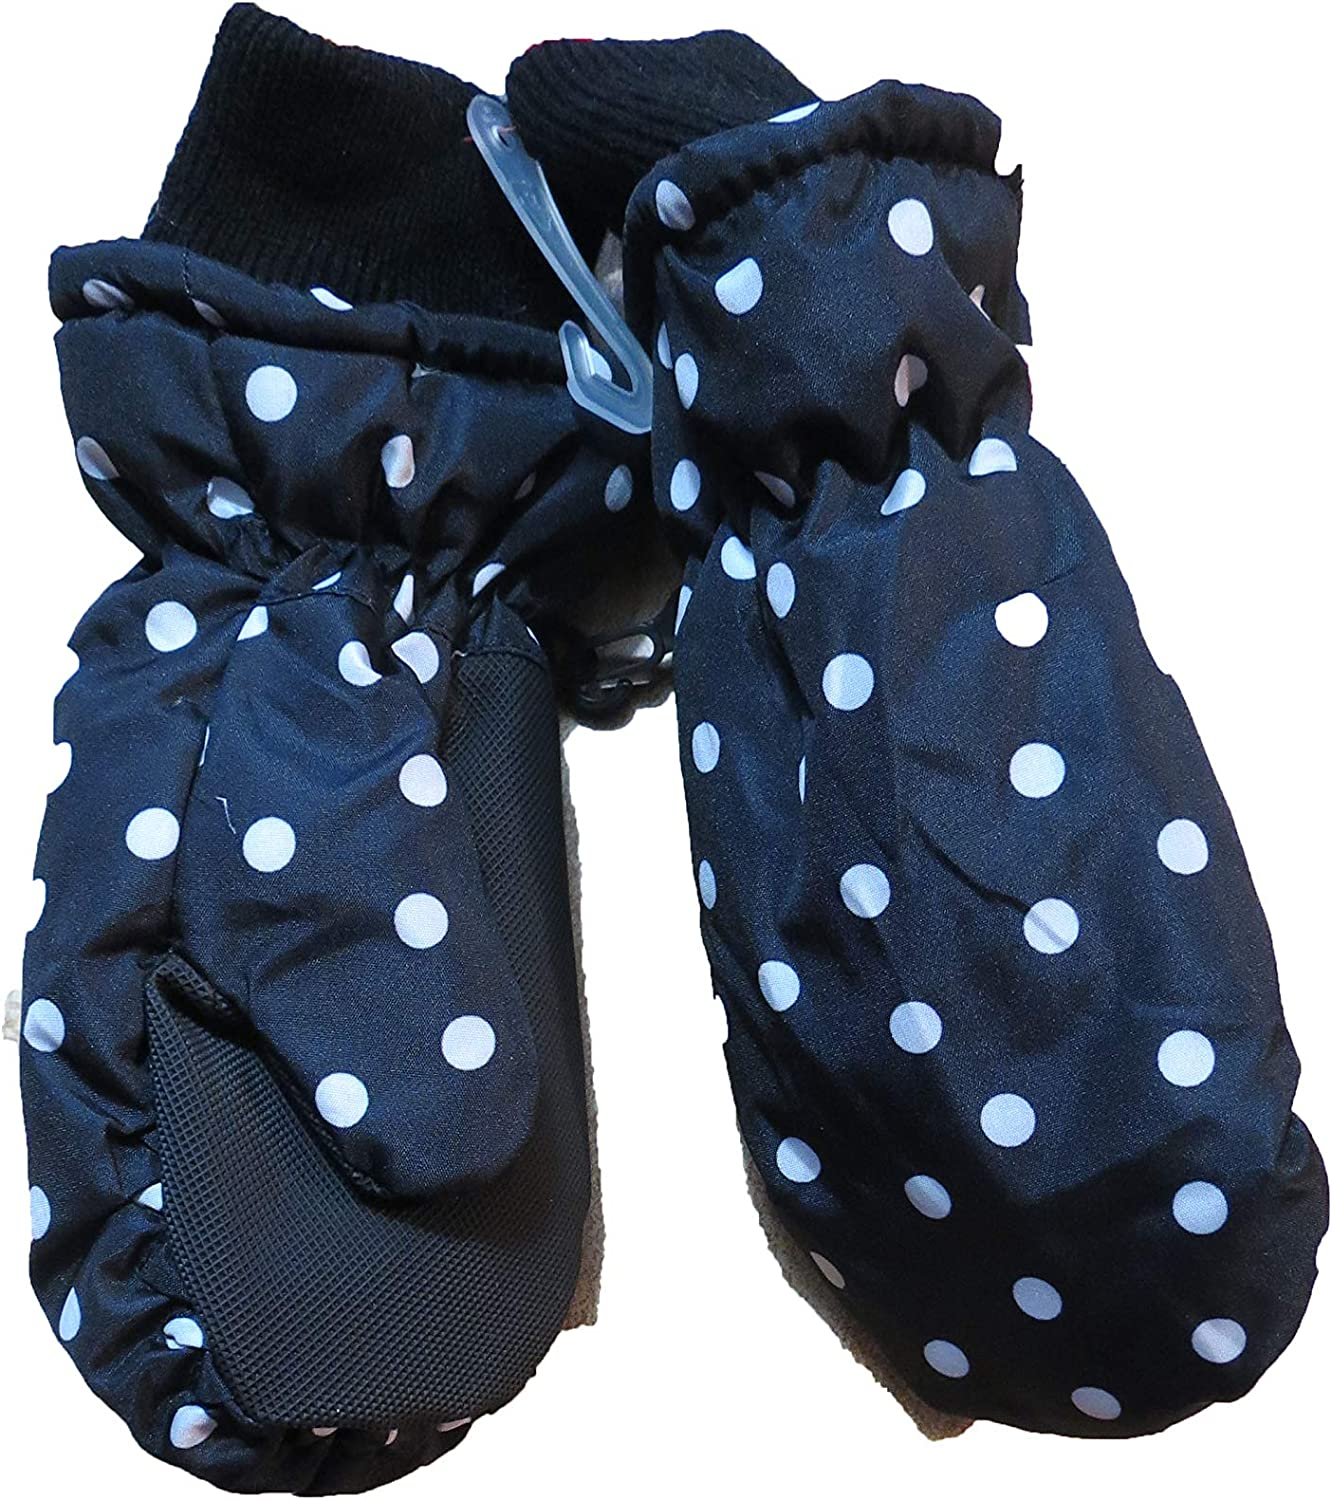 Cat & Jack Black polka dot Winter Mittens 3M thin sulate water resistant 2T-5T